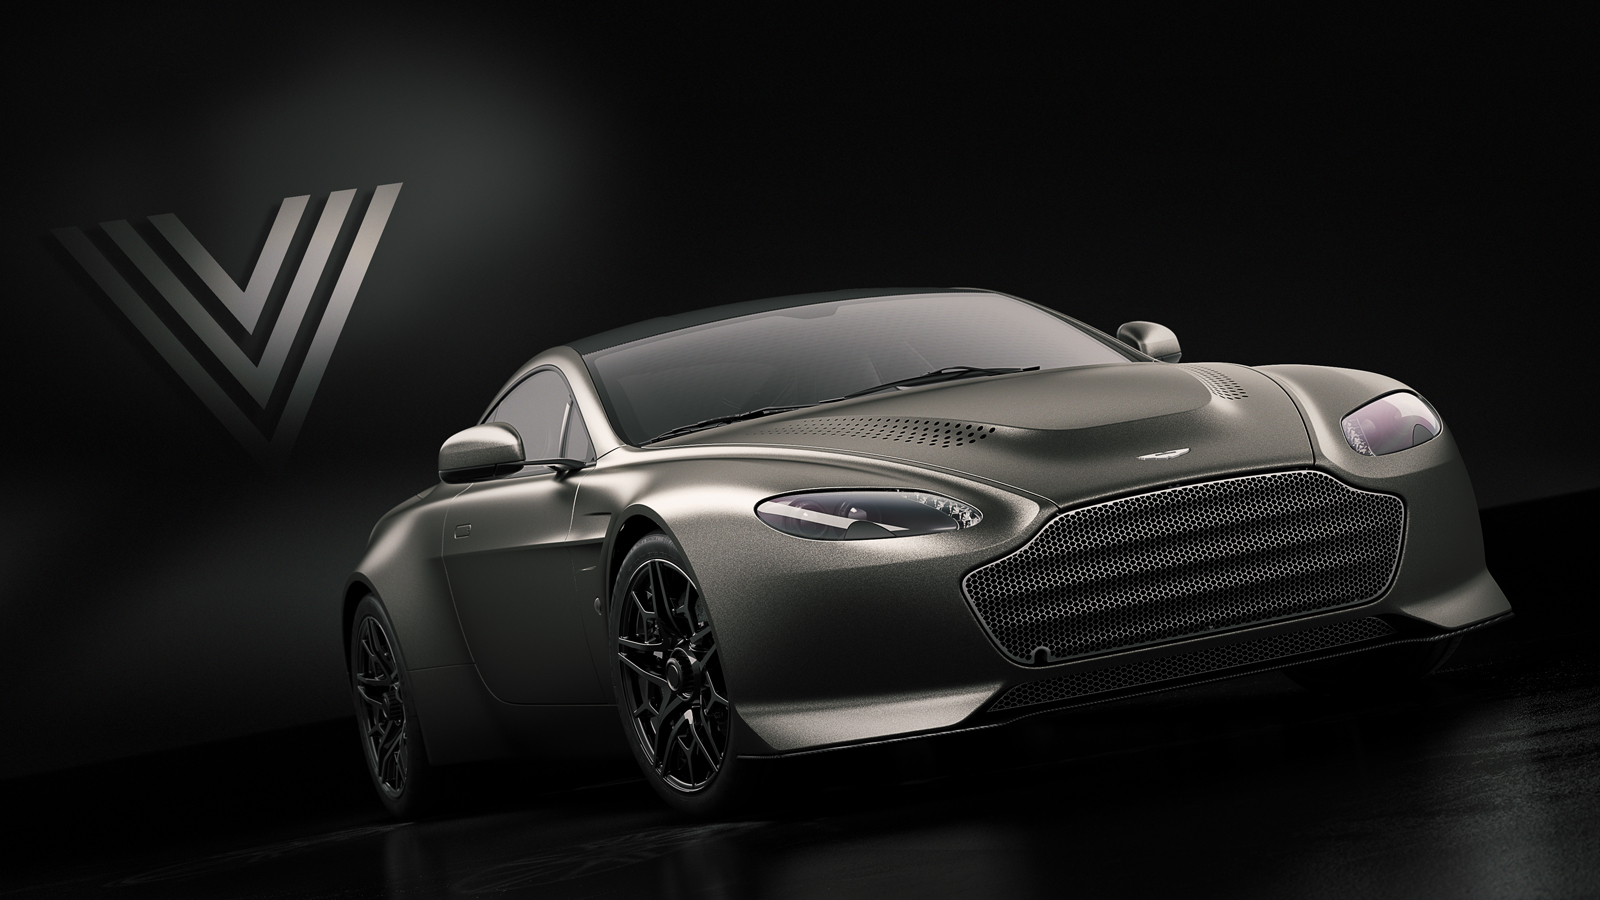 Aston Martin Vantage V600 A 600 Hp V12 And A Seven Speed Manual